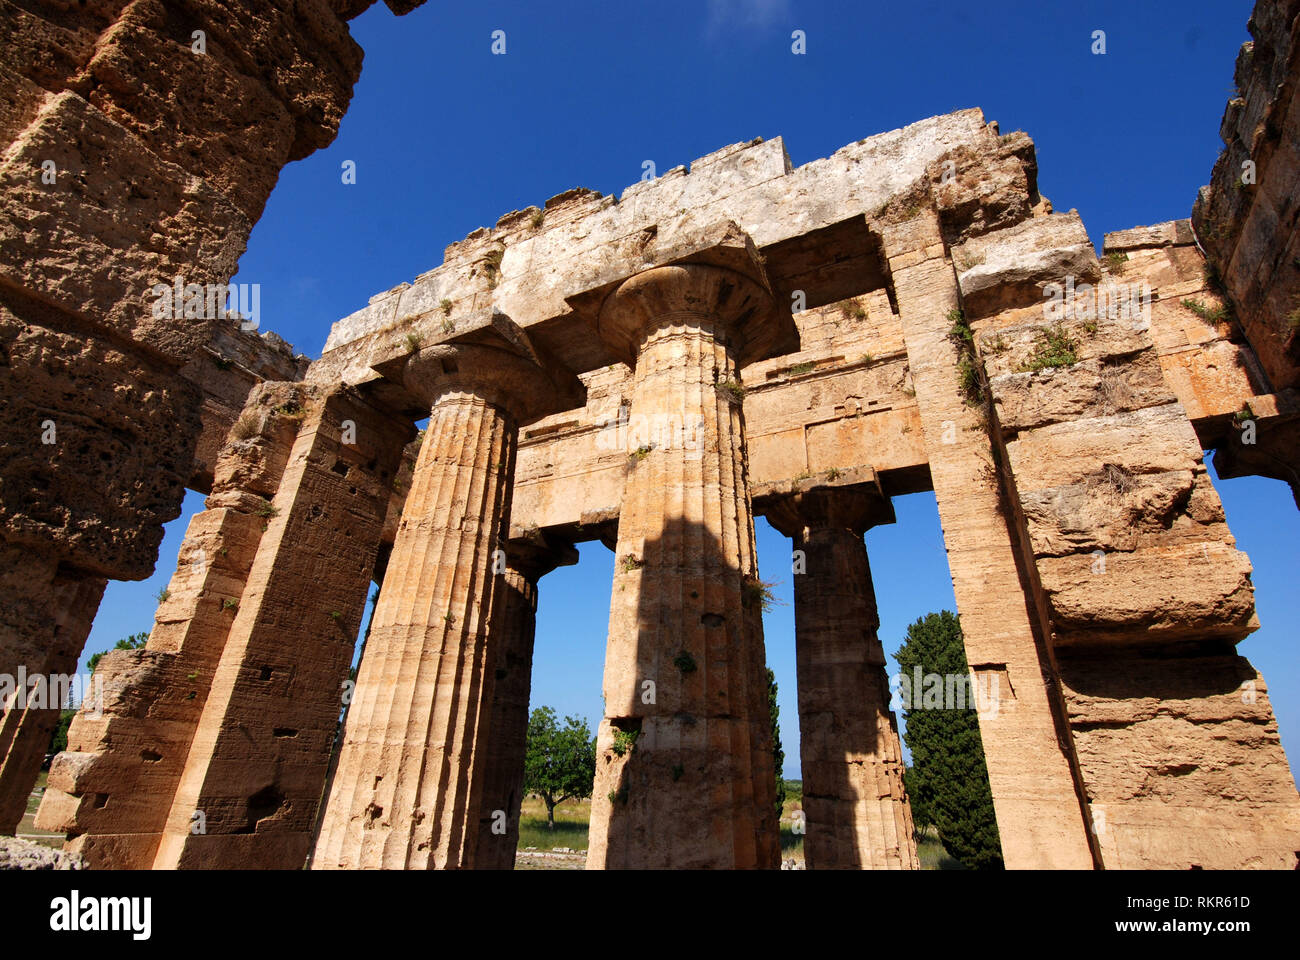 temple of neptune in archaeological site of Paestum great greece salerno italy 2018 - Stock Image